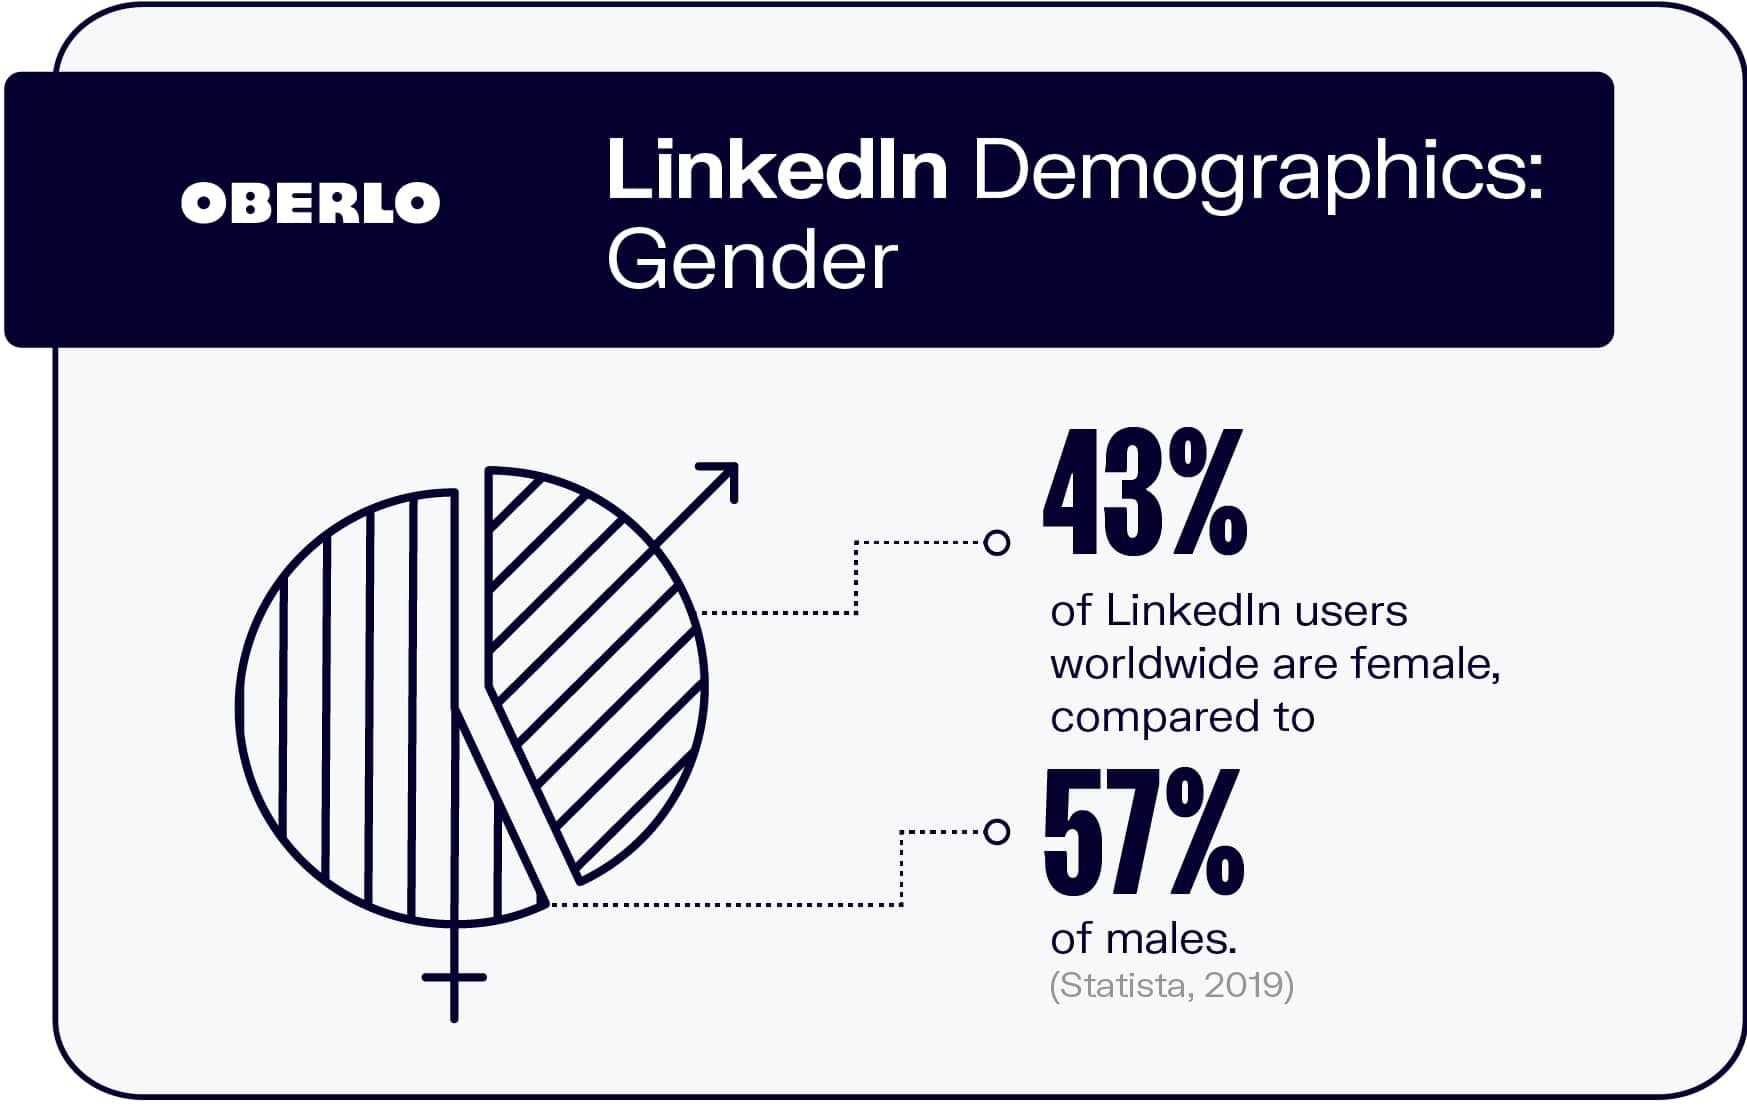 LinkedIn Demographics: Gender